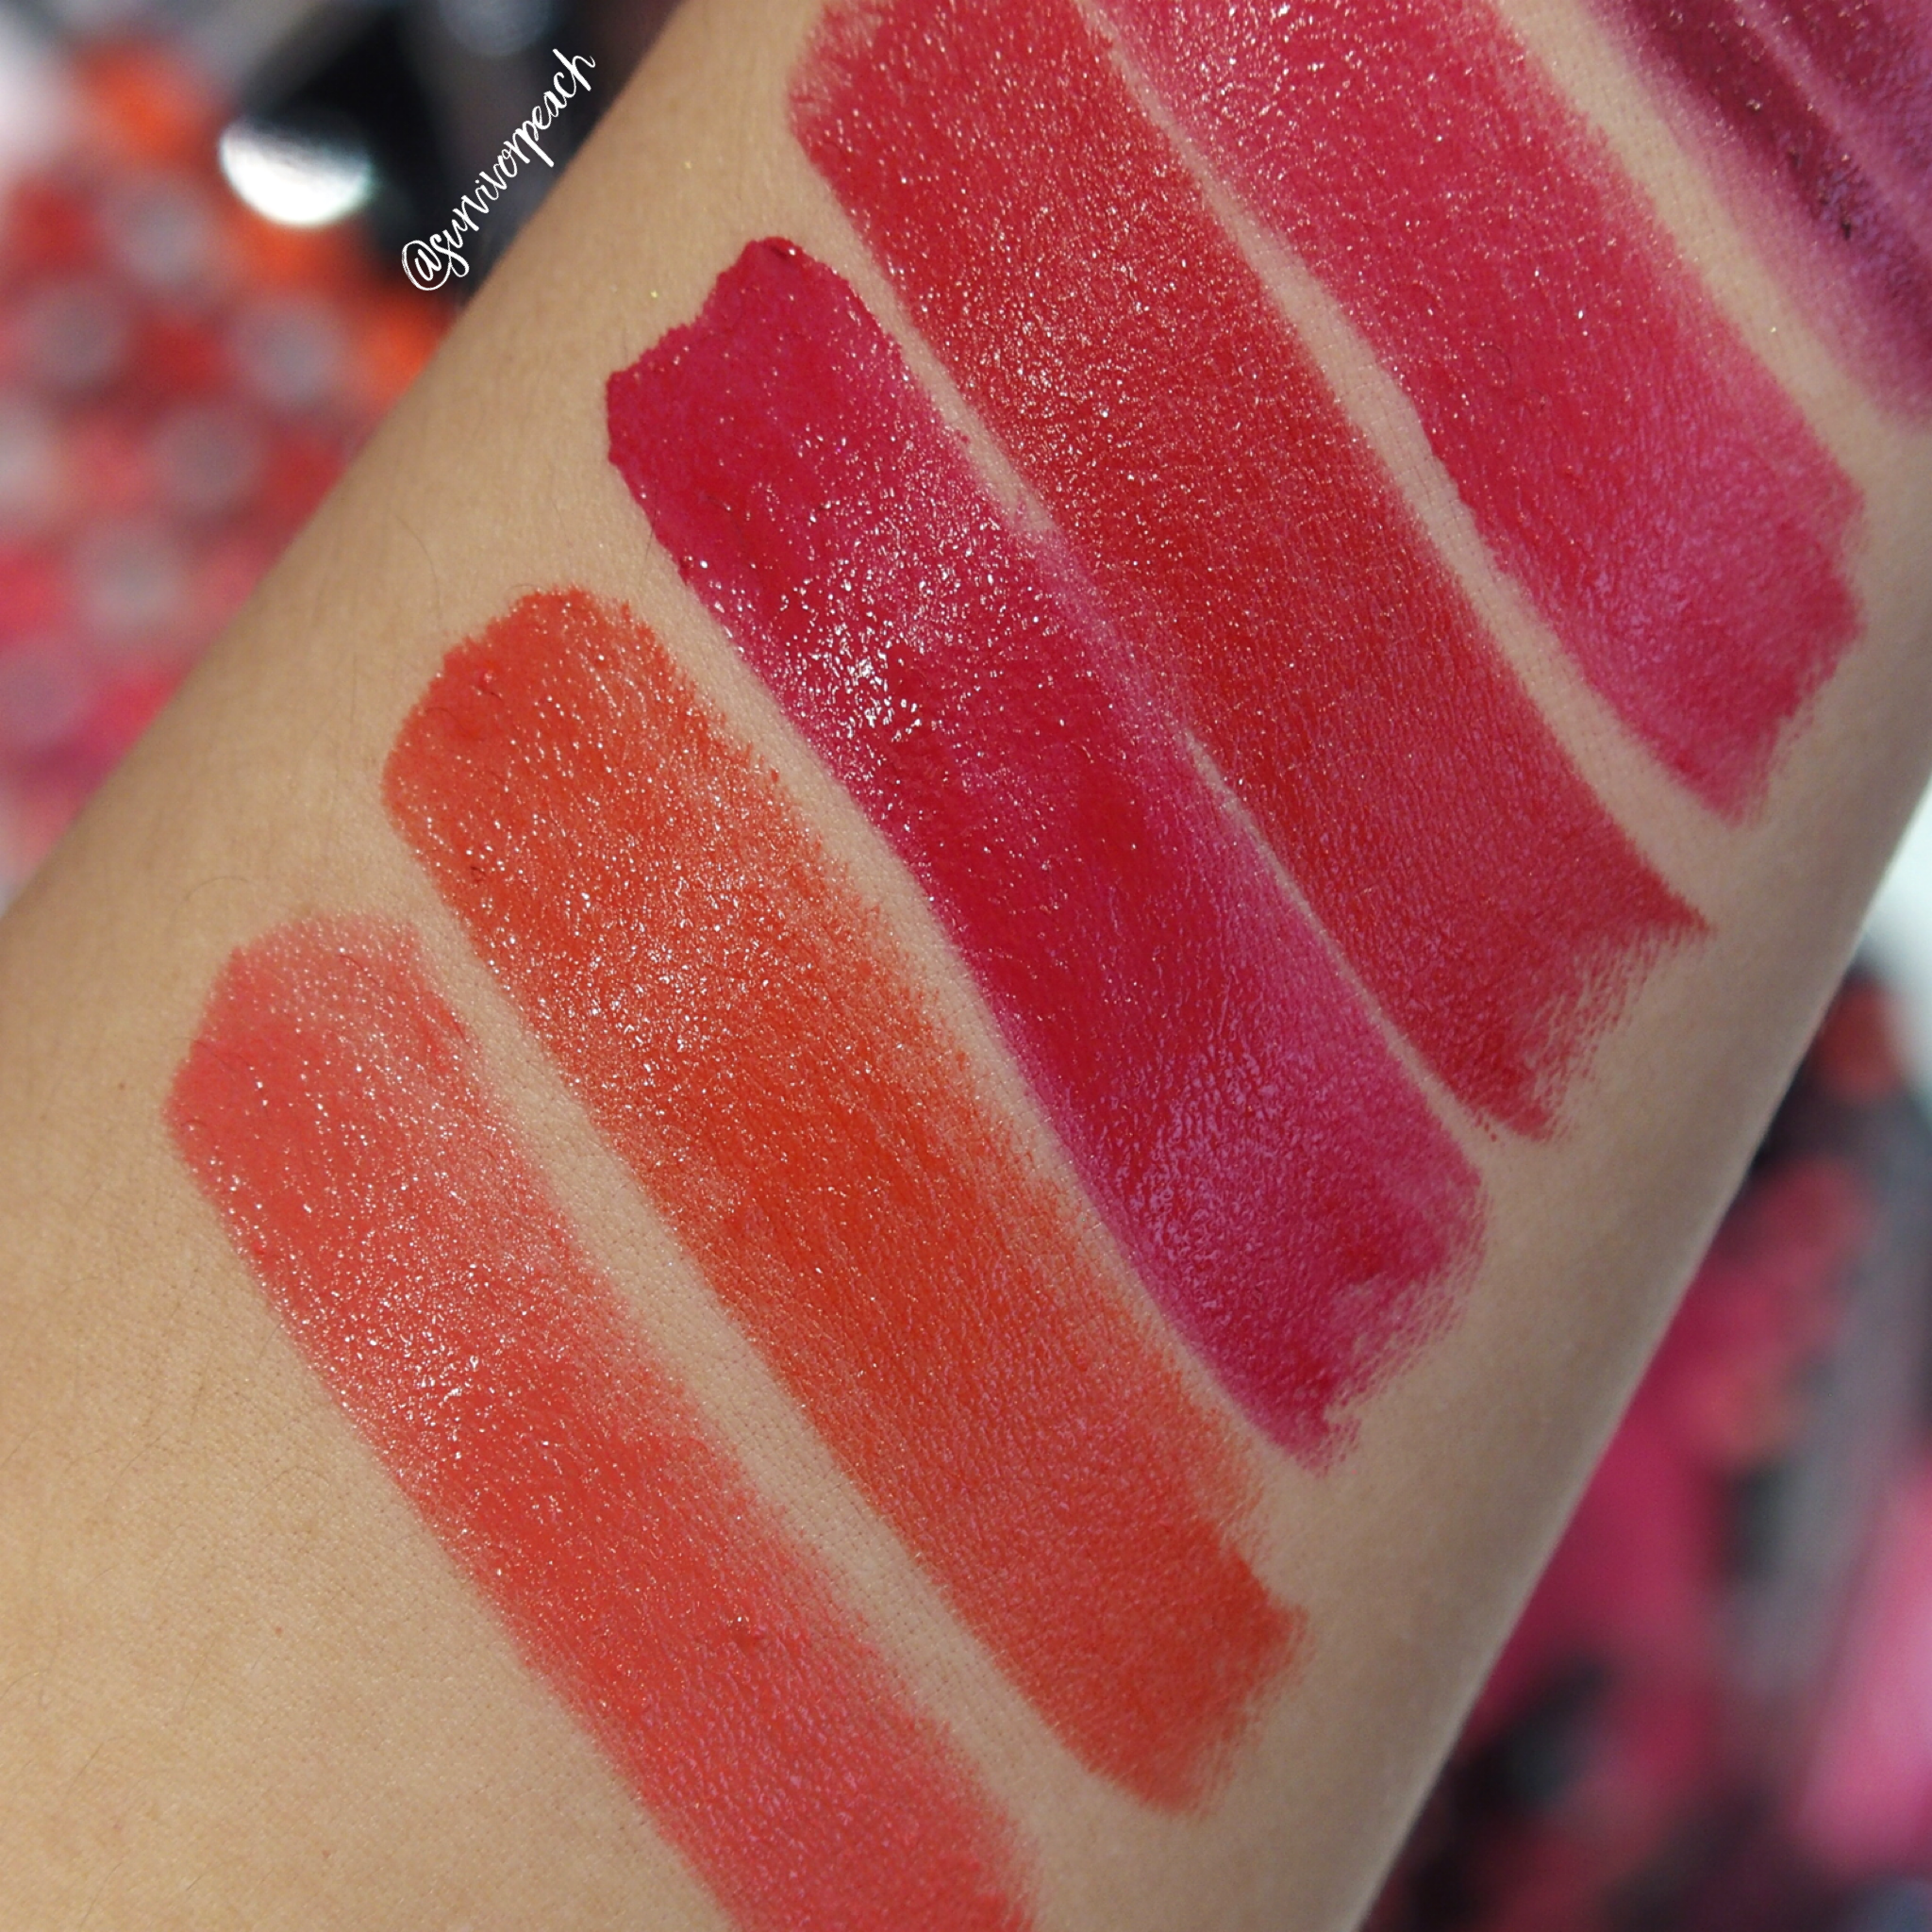 Sephora Collection Lipstick Rouge Lacquer Lipstick swatches - L10 Survivor, L11 Love Letter, L12 Be The Boss, L13 CEO